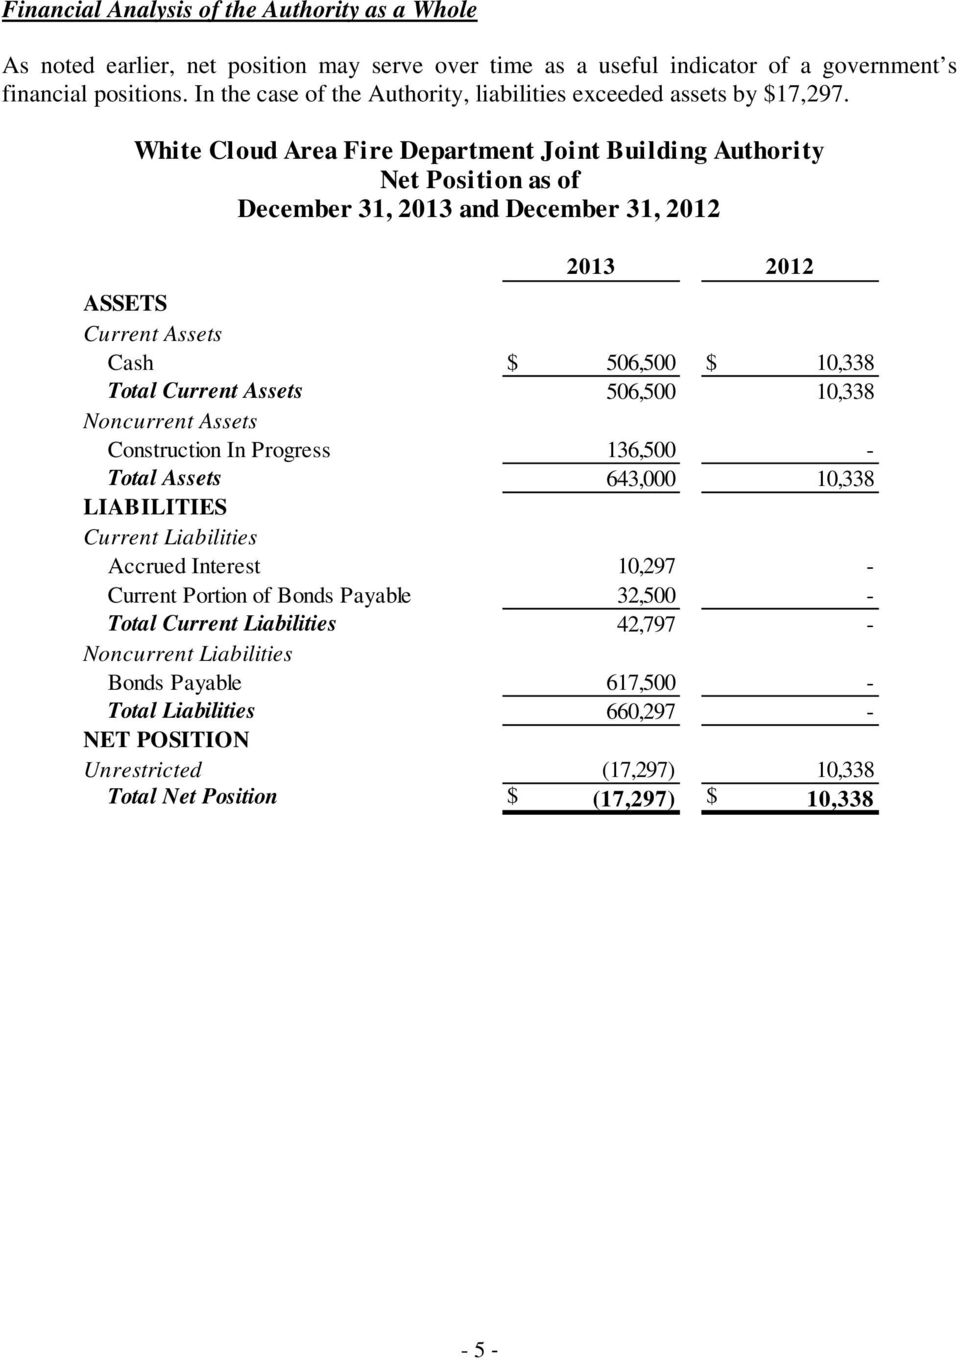 White Cloud Area Fire Department Joint Building Authority Net Position as of December 31, 2013 and December 31, 2012 2013 2012 ASSETS Current Assets Cash $ 506,500 $ 10,338 Total Current Assets